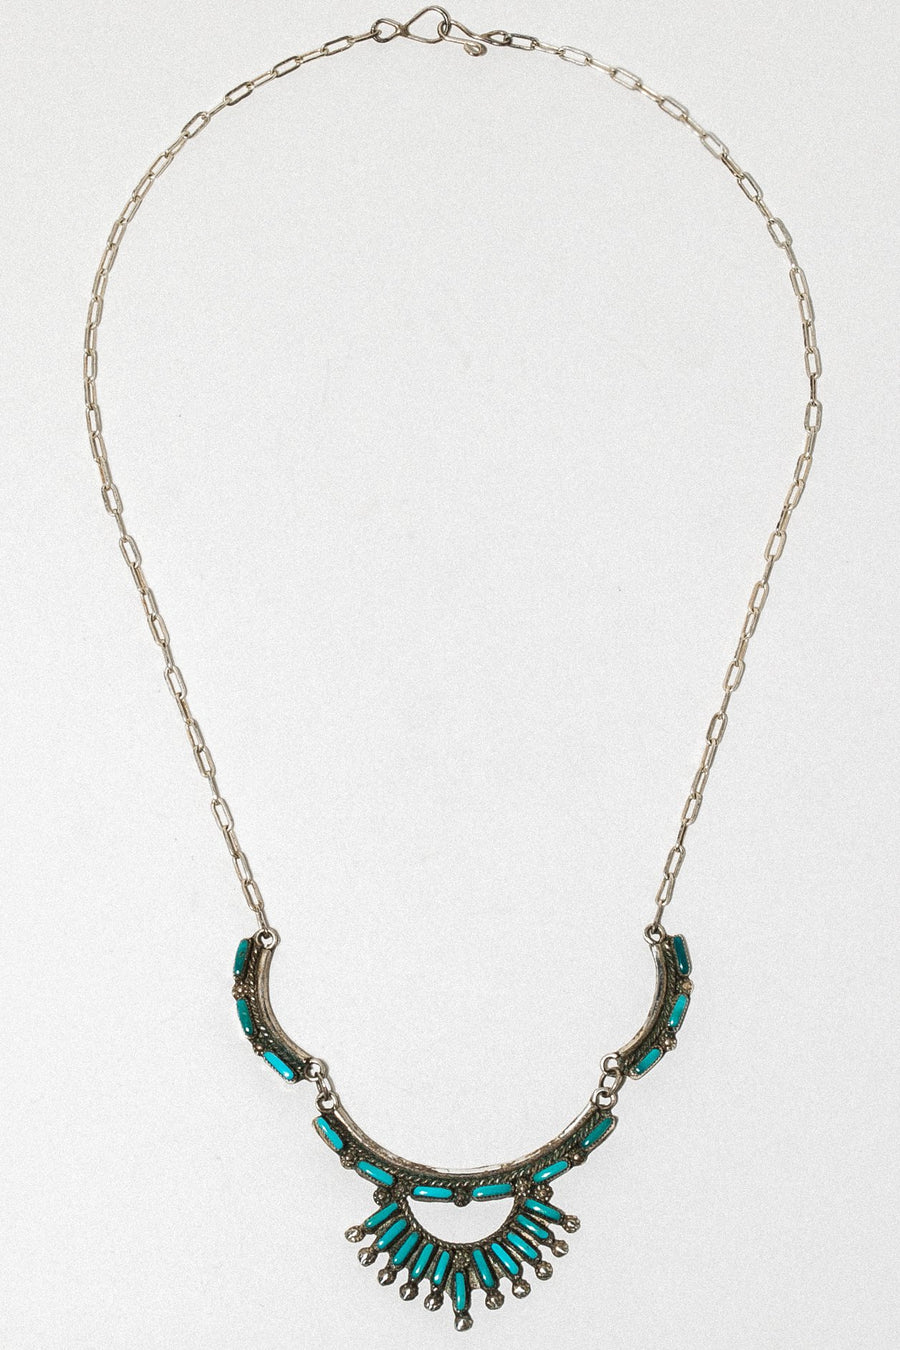 Ayman Jewelry Silver / 19 Inches / Turquoise Chenoa Native American Necklace